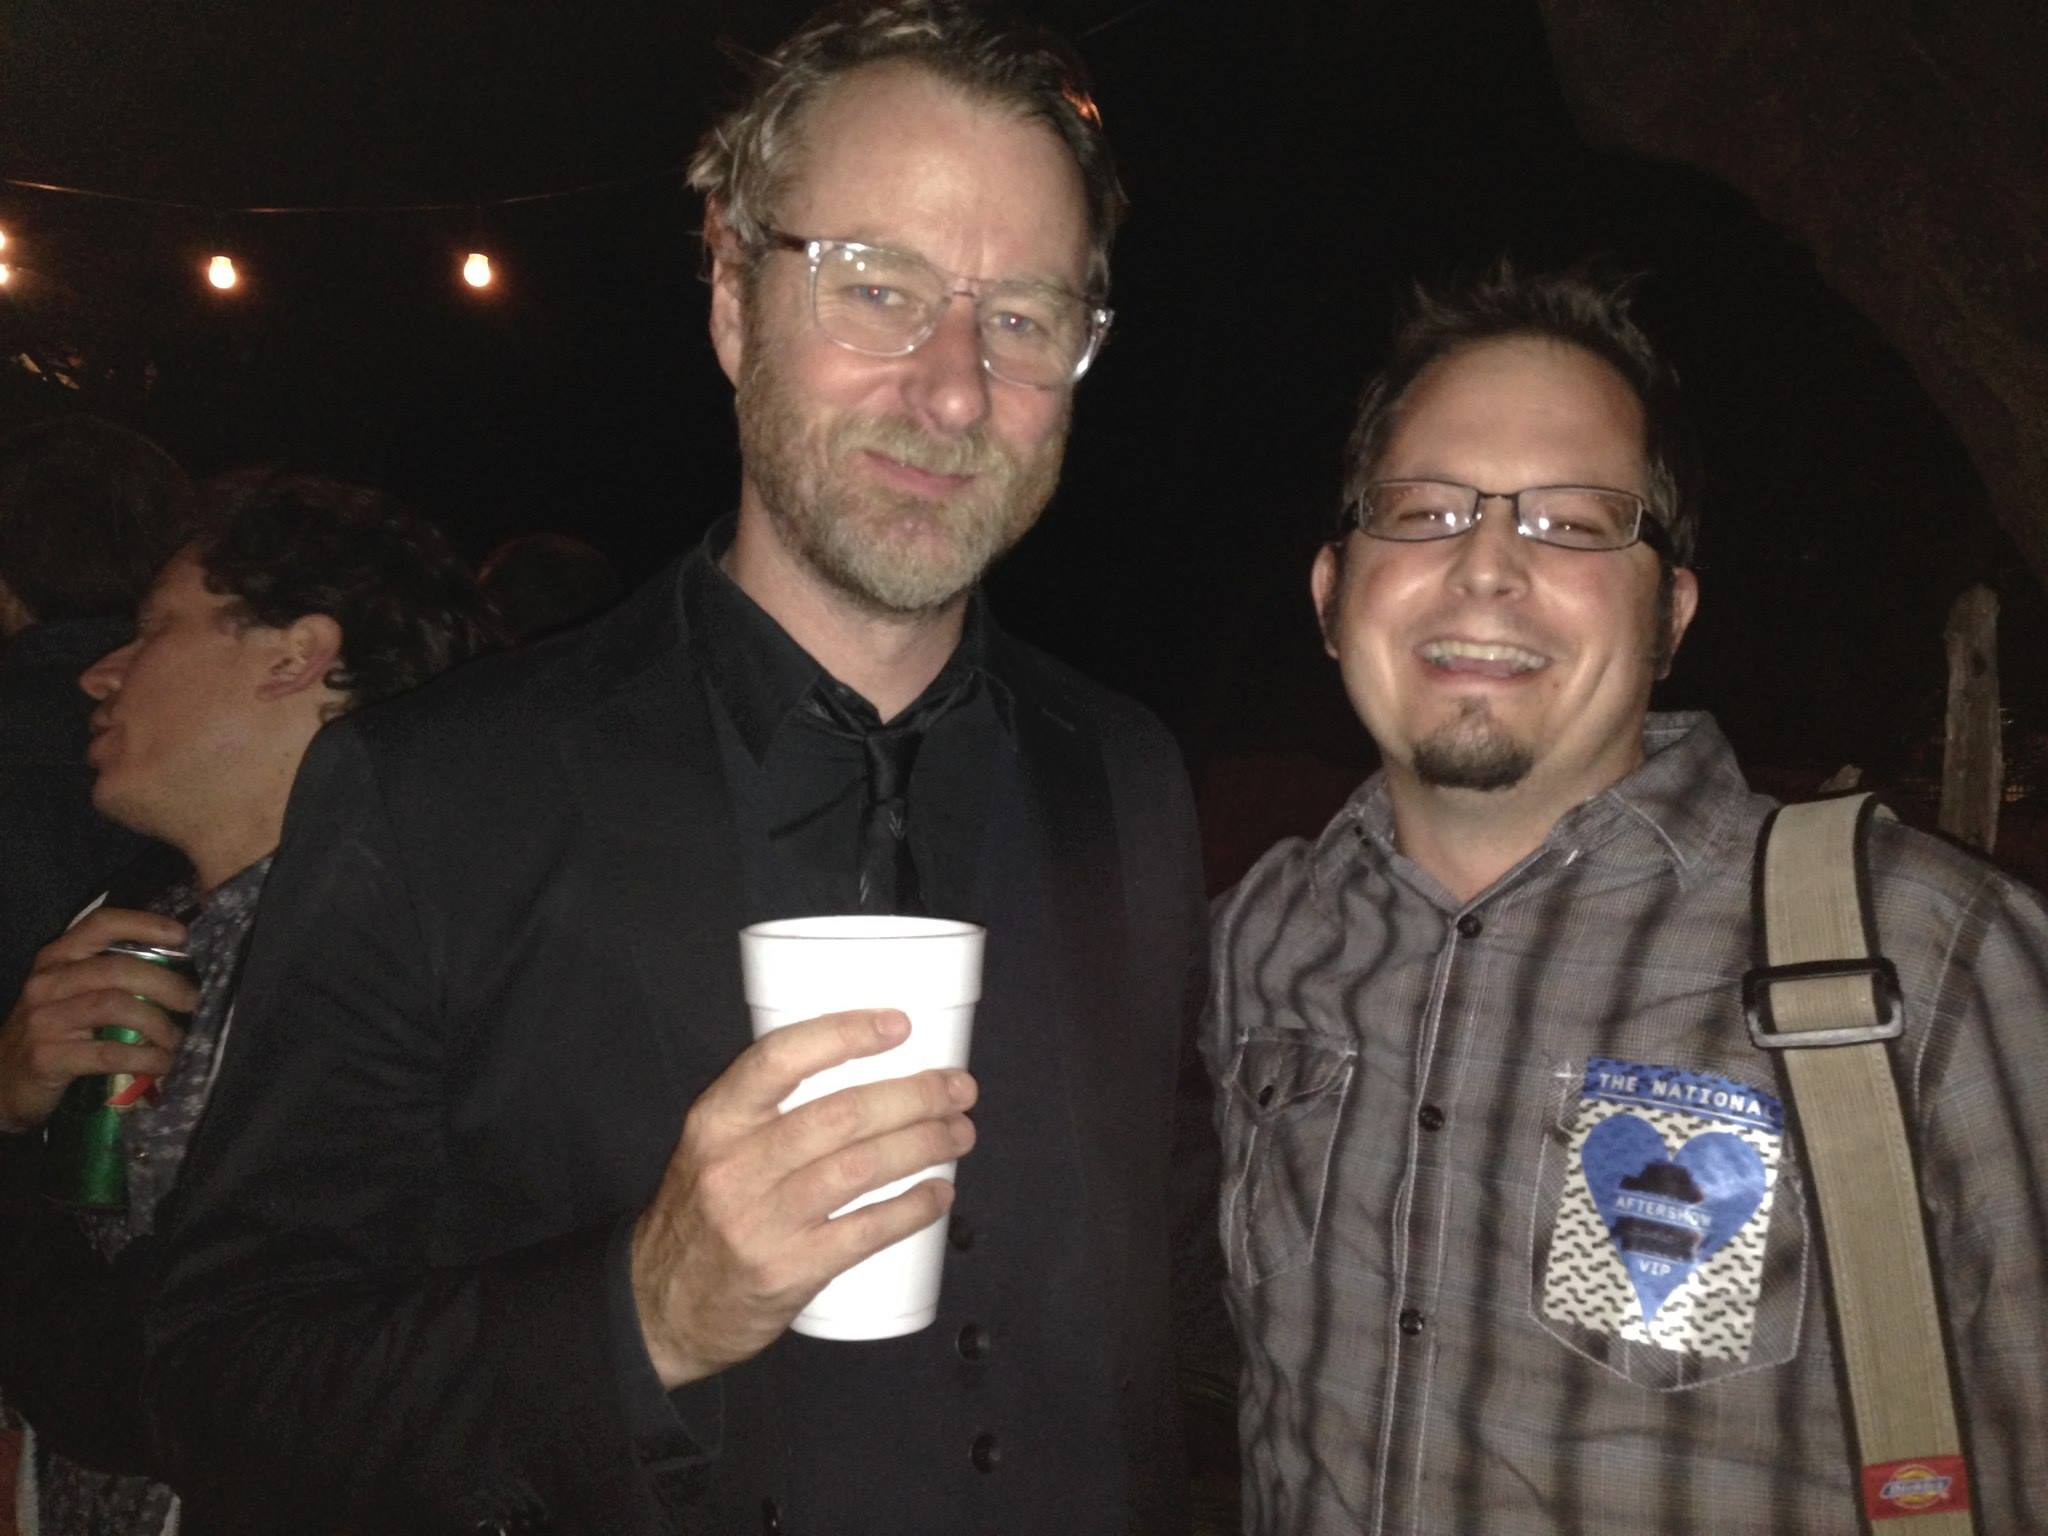 With the talented Matt Berninger of The National.